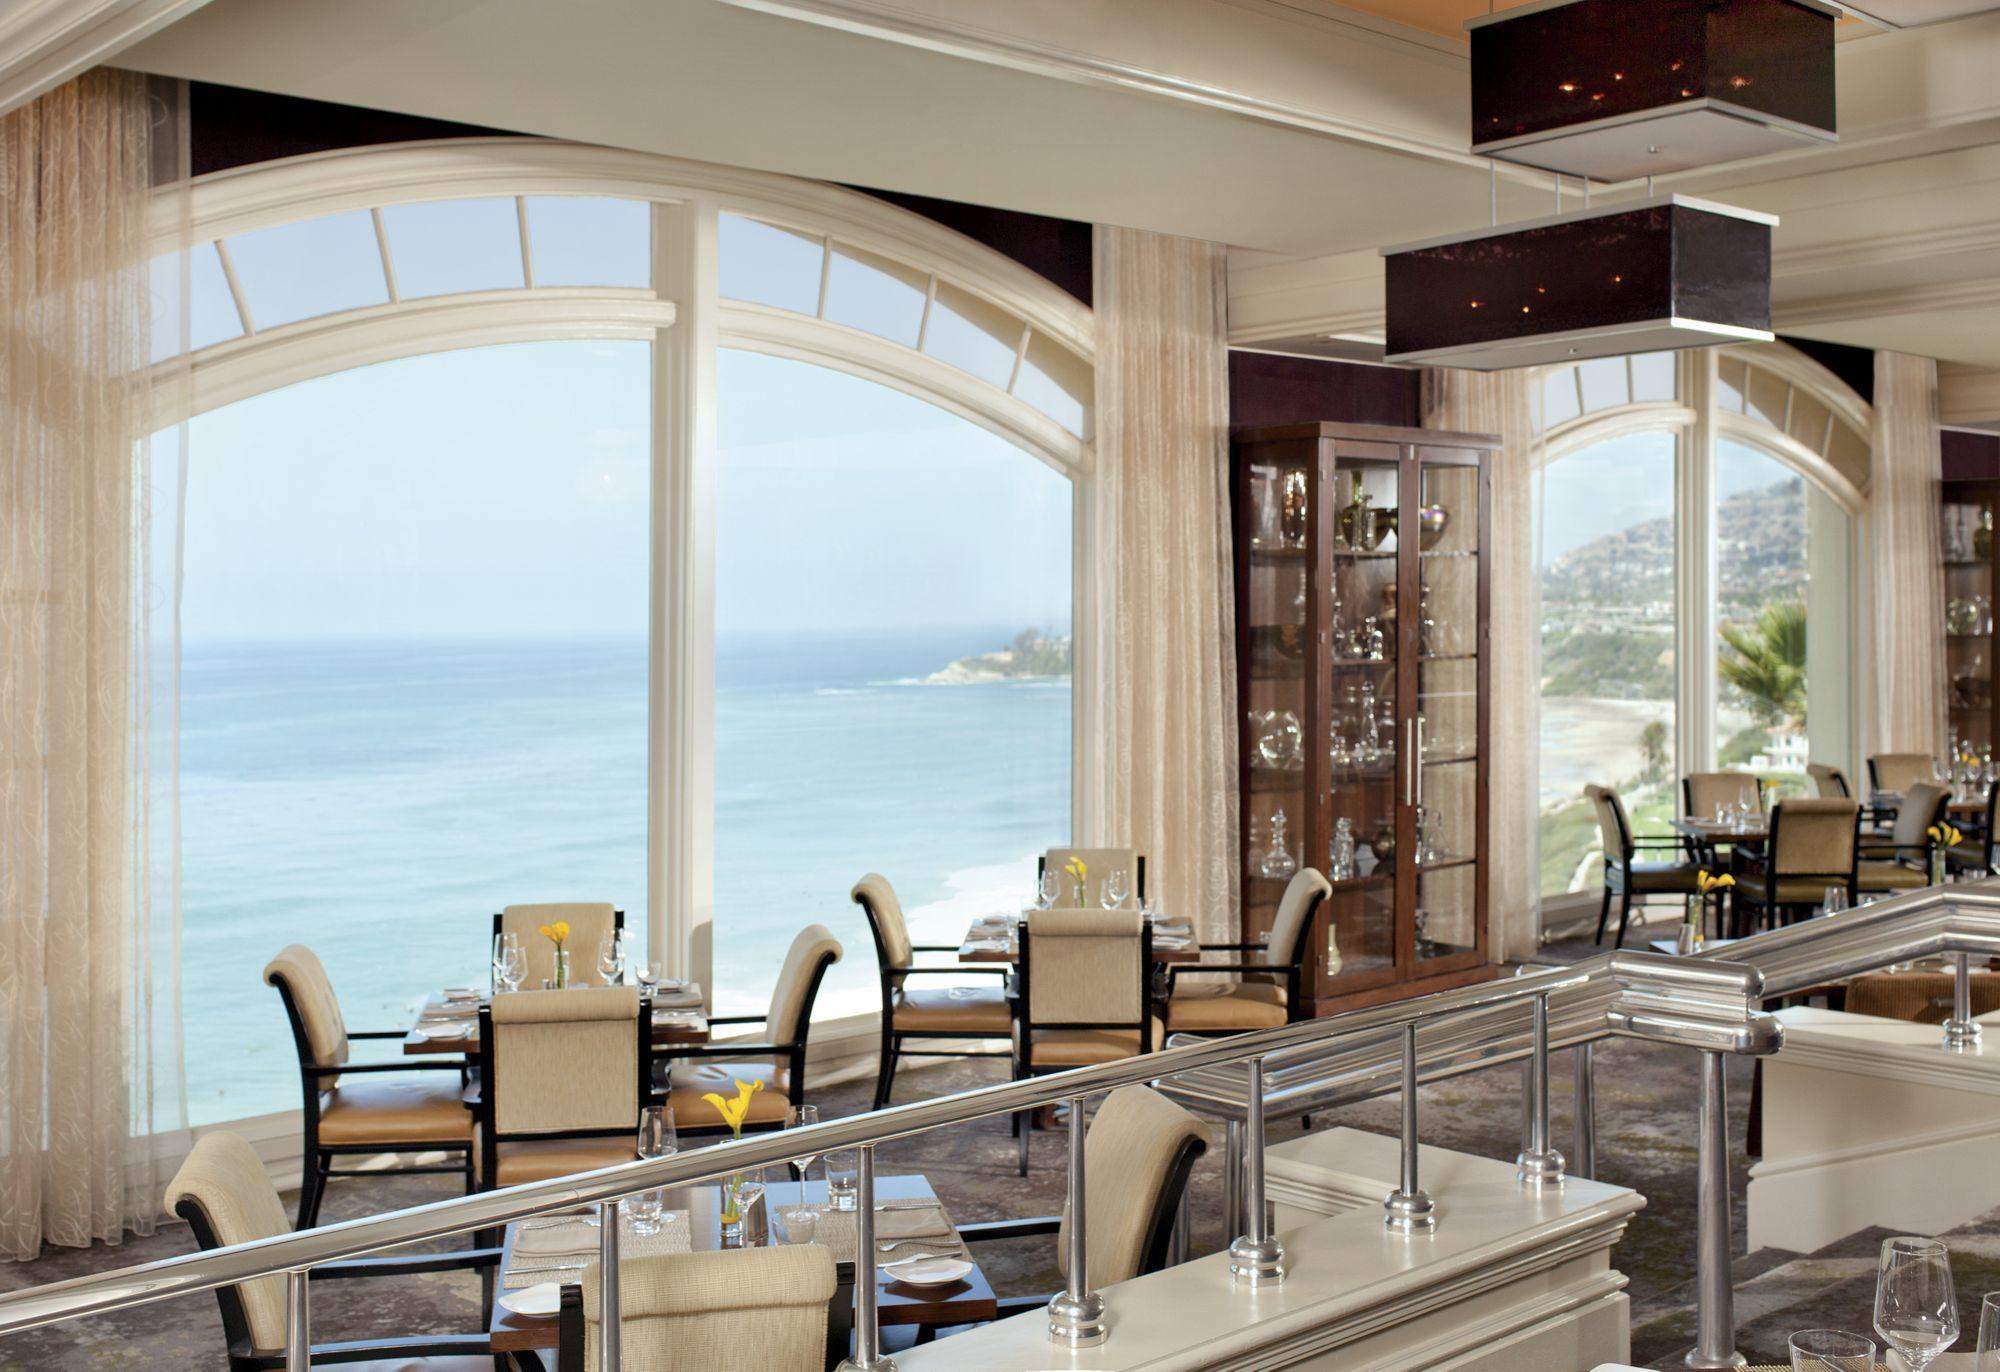 Raya at The Ritz-Carlton, Laguna Niguel (Photo Credit: The Ritz-Carlton, Laguna Niguel)